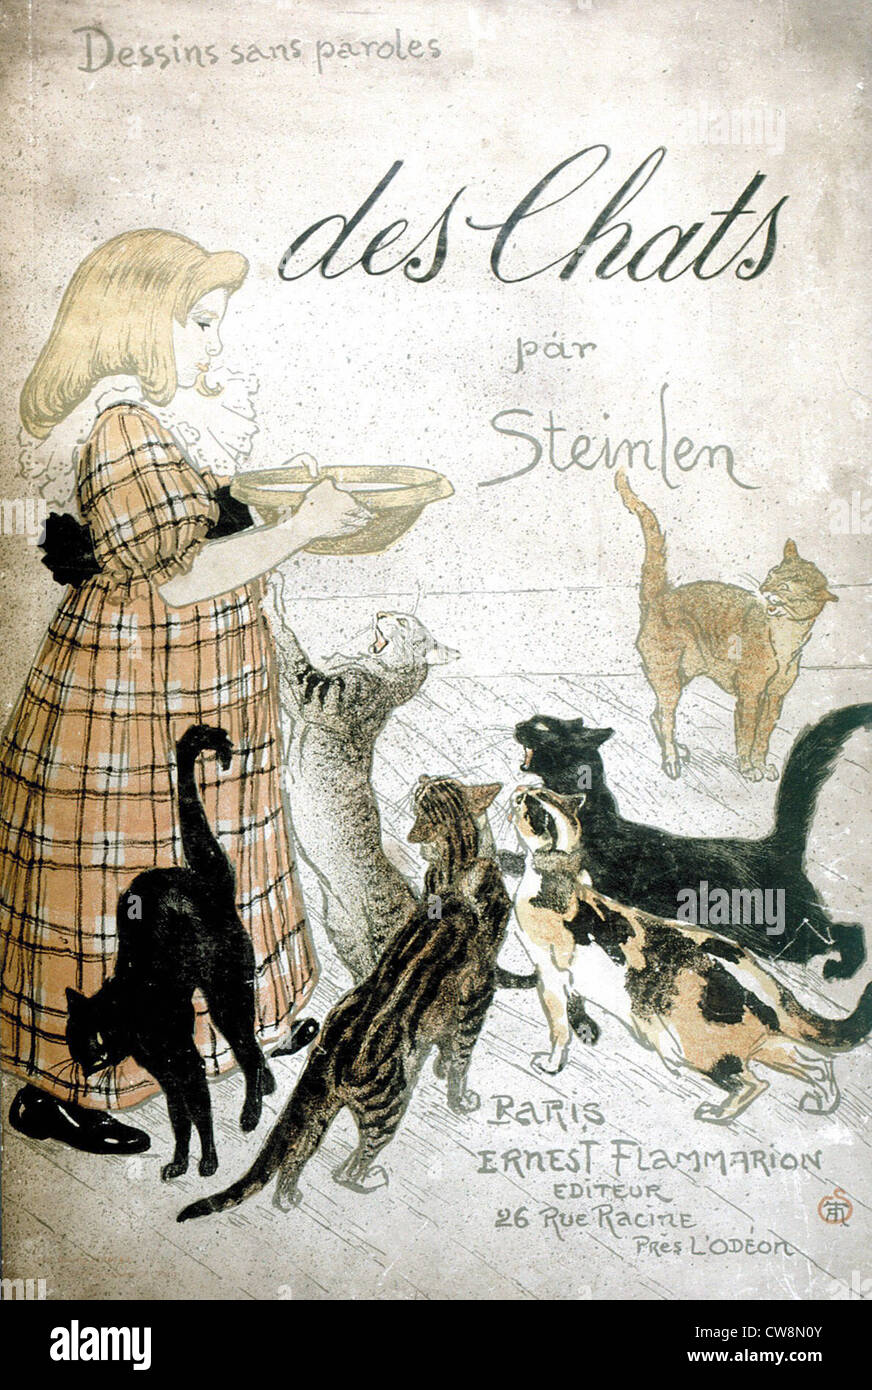 Cats, Images without words by Steinlen - Stock Image